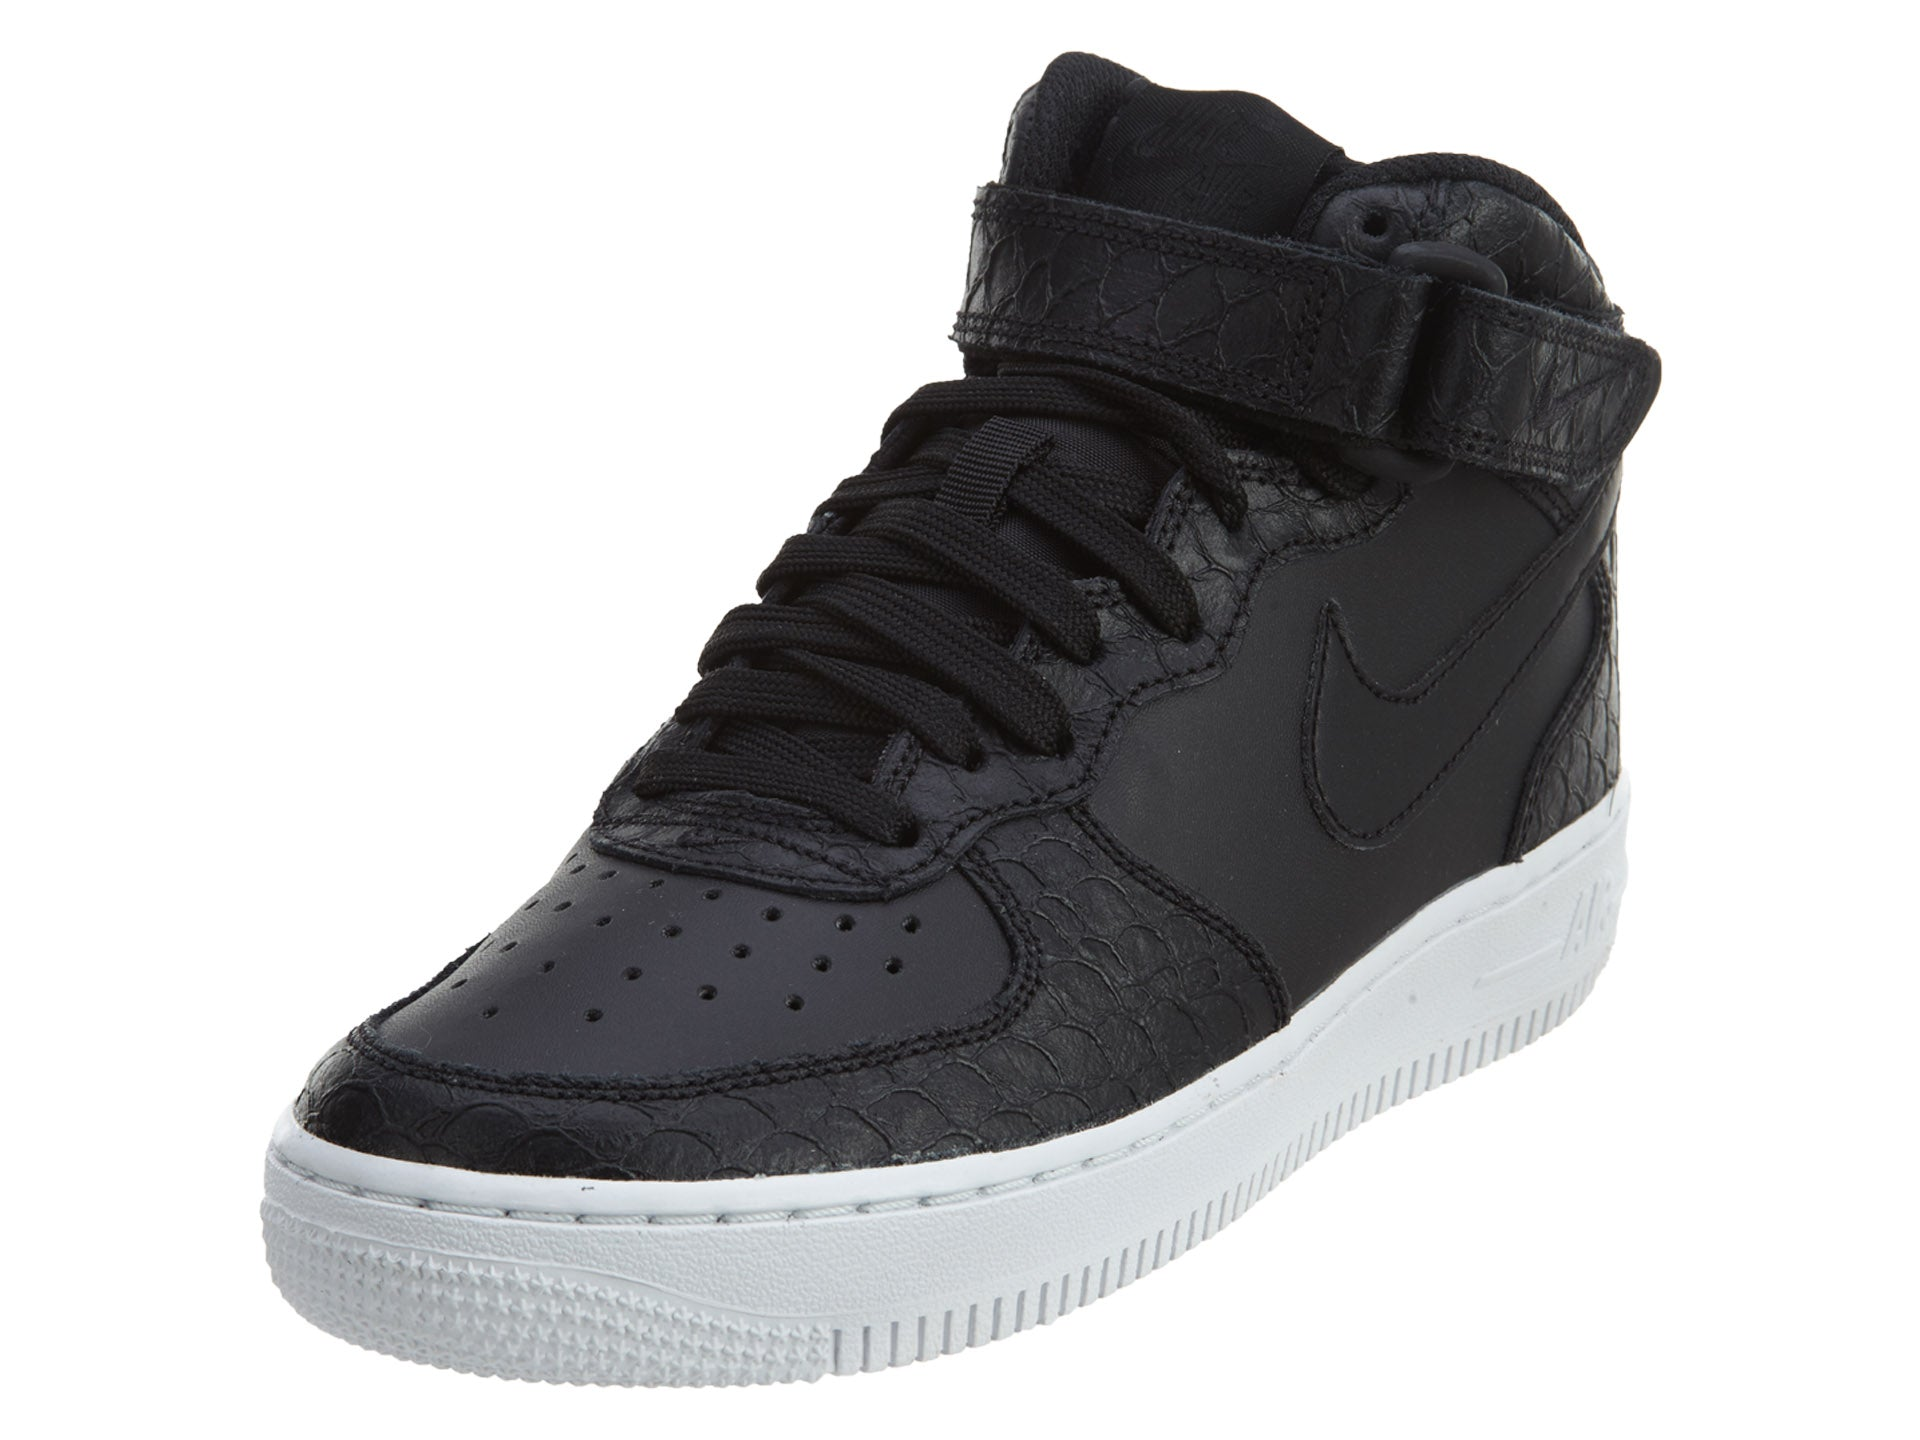 the latest 907e7 c6f75 Nike Air Force 1 Mid Lv8 Big Kids Style   820342